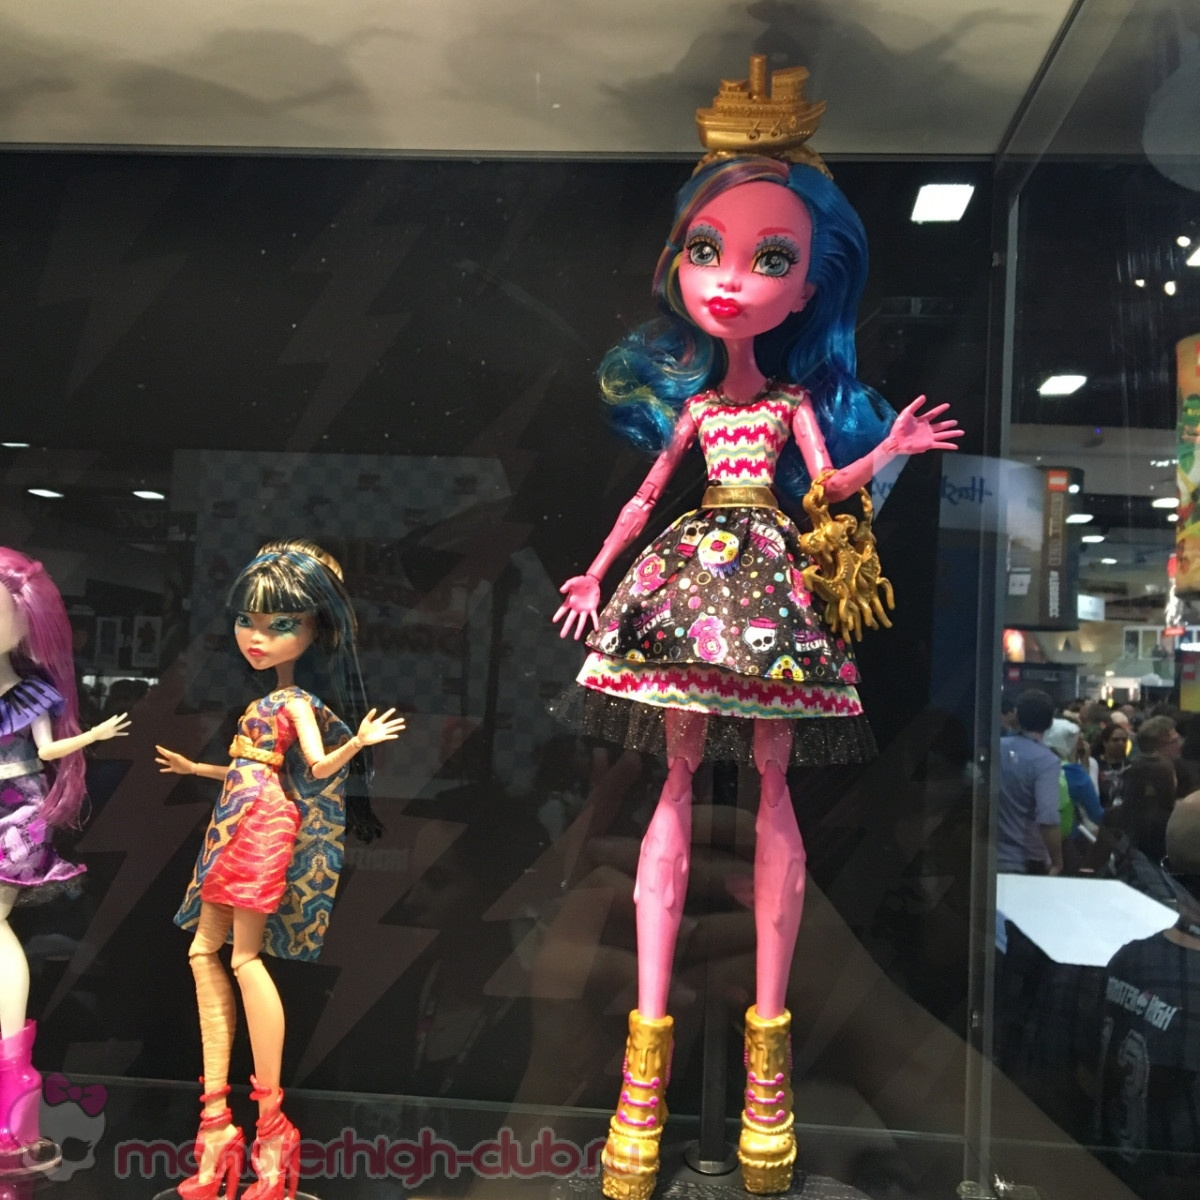 monster_high_club_sdcc_2016_monster_high_shriek_wrecked_minis_gooliope_mermaid_figures (14)